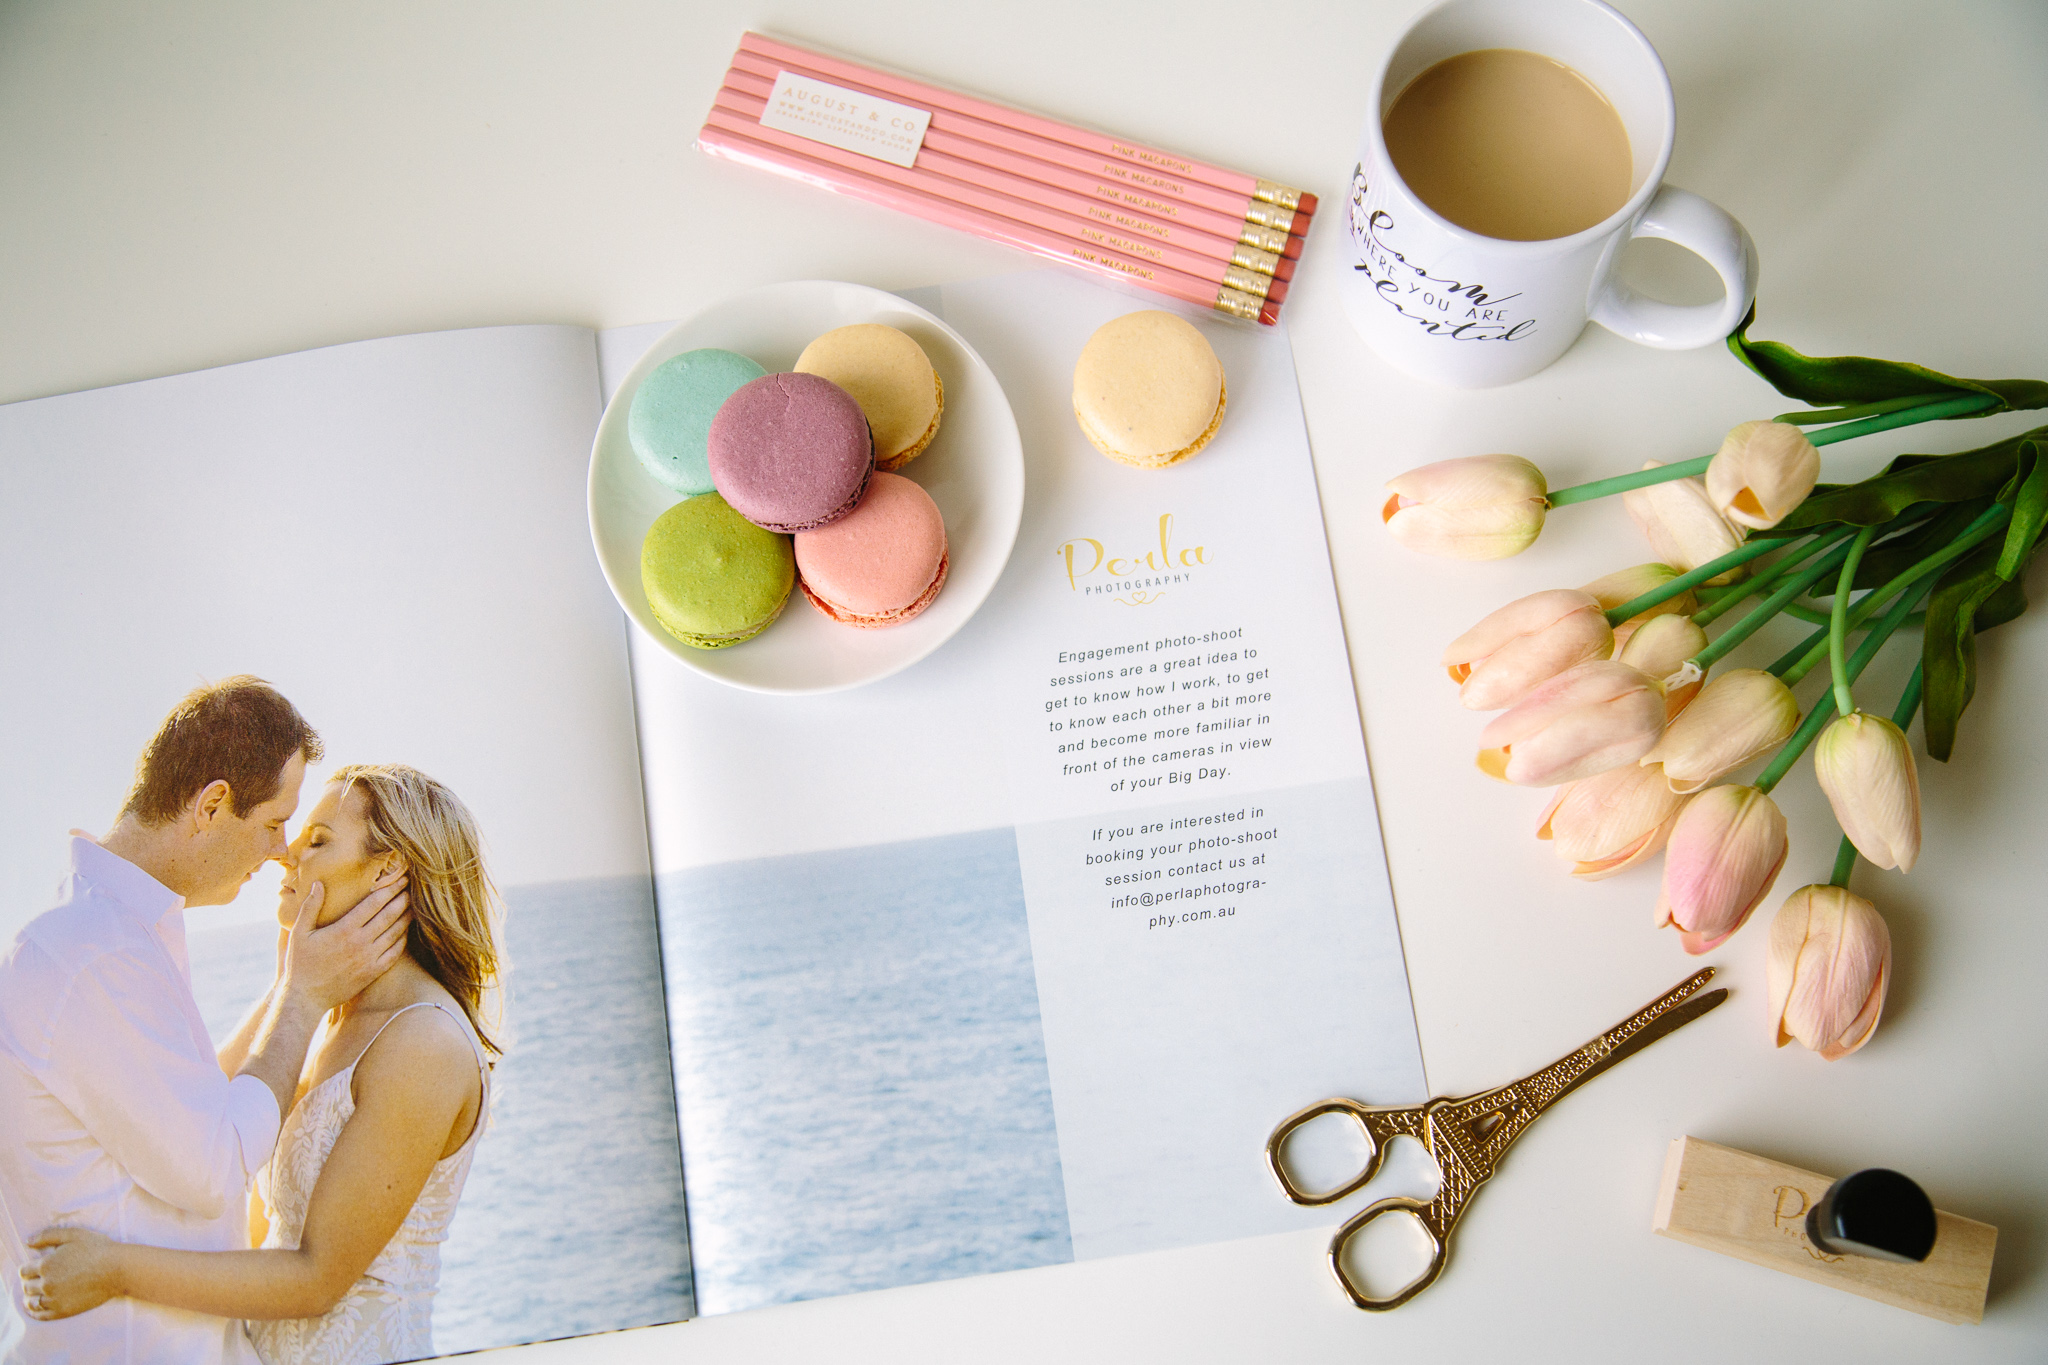 new client gift ideas | bittersweet design boutique